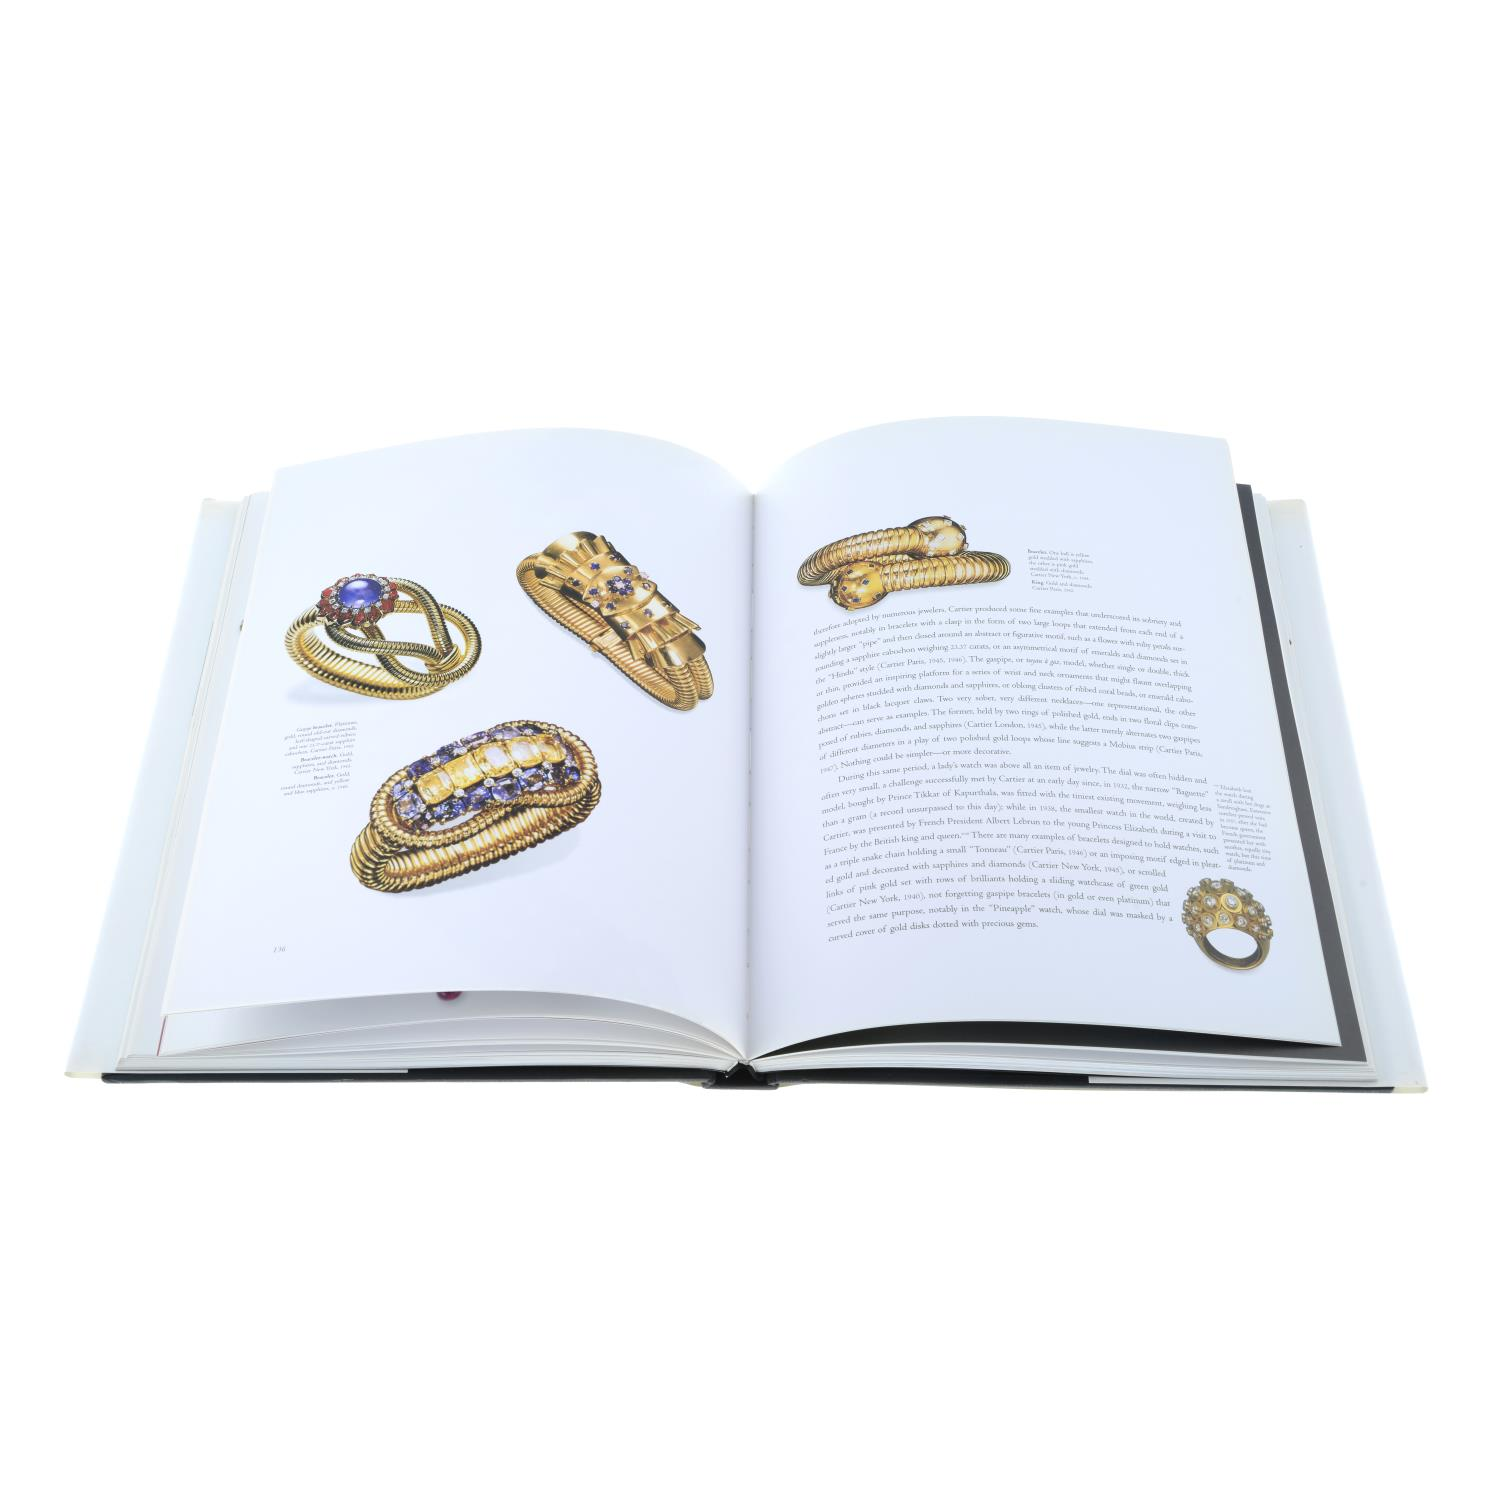 Six jewellery books:Auction catalogue. - Image 4 of 4